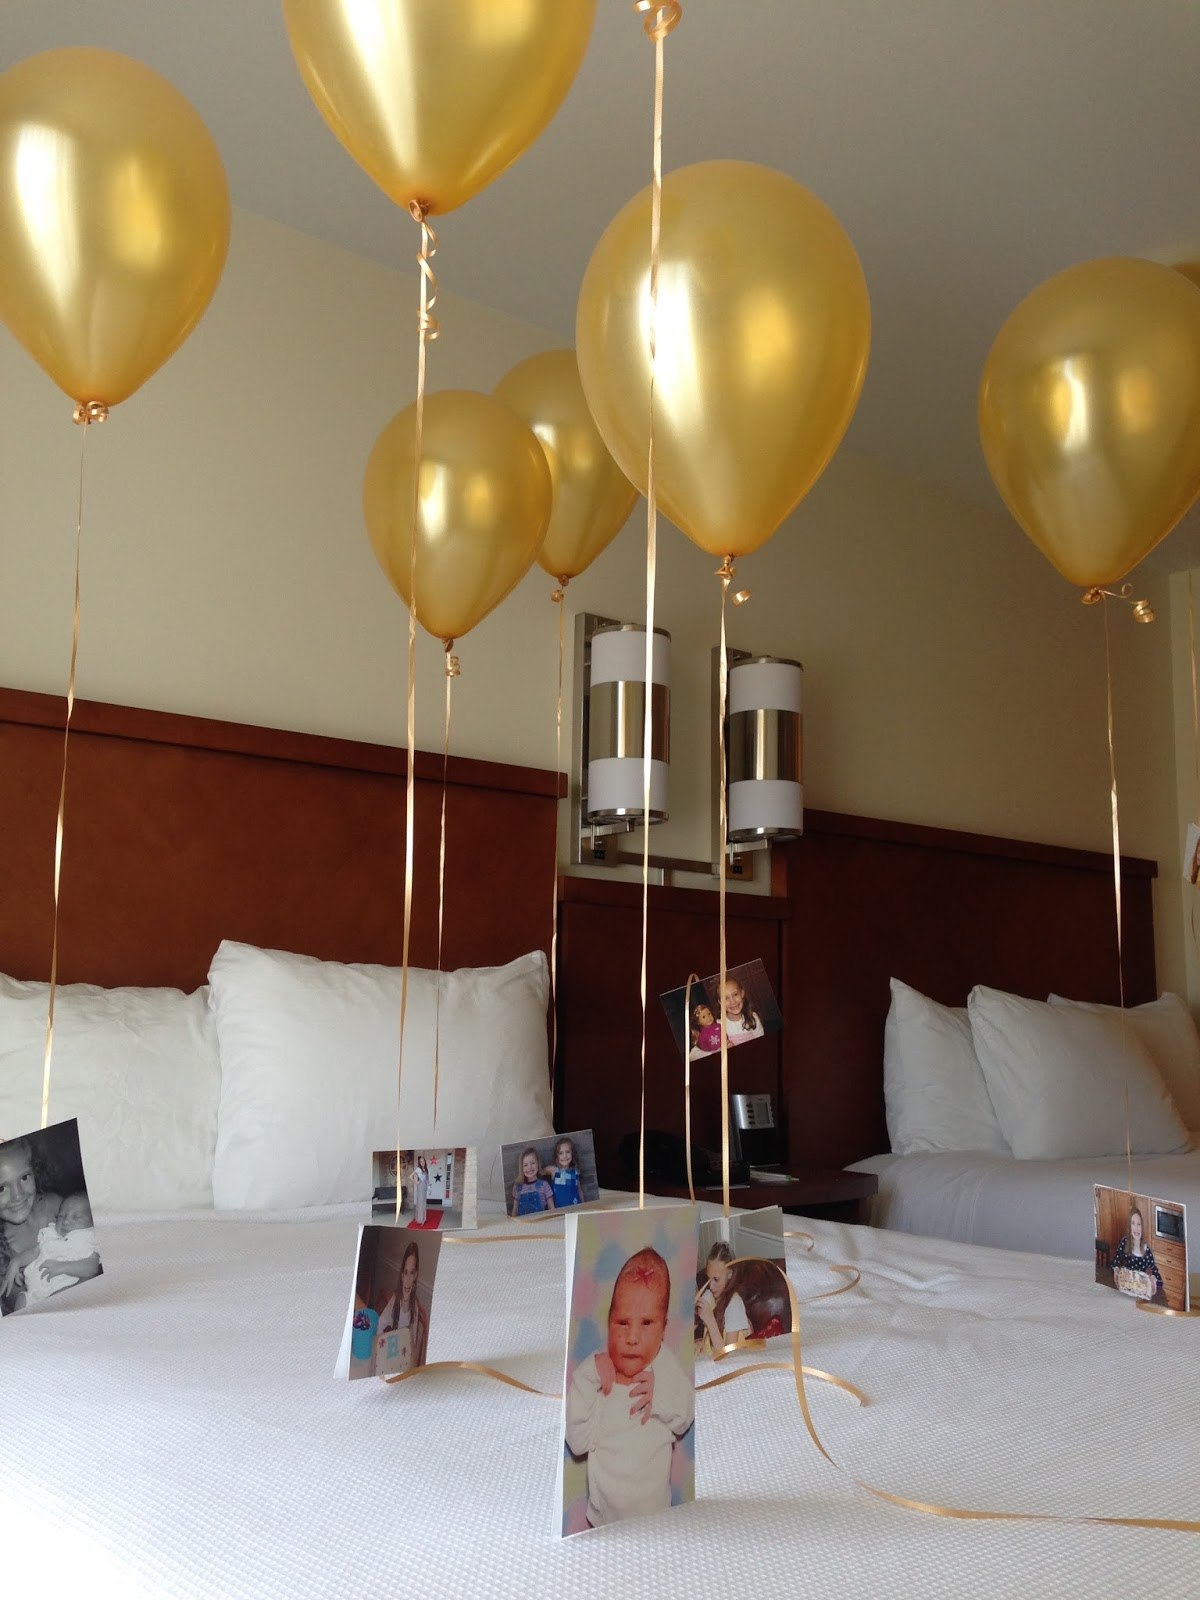 How To Decorate A Hotel Room For A Party